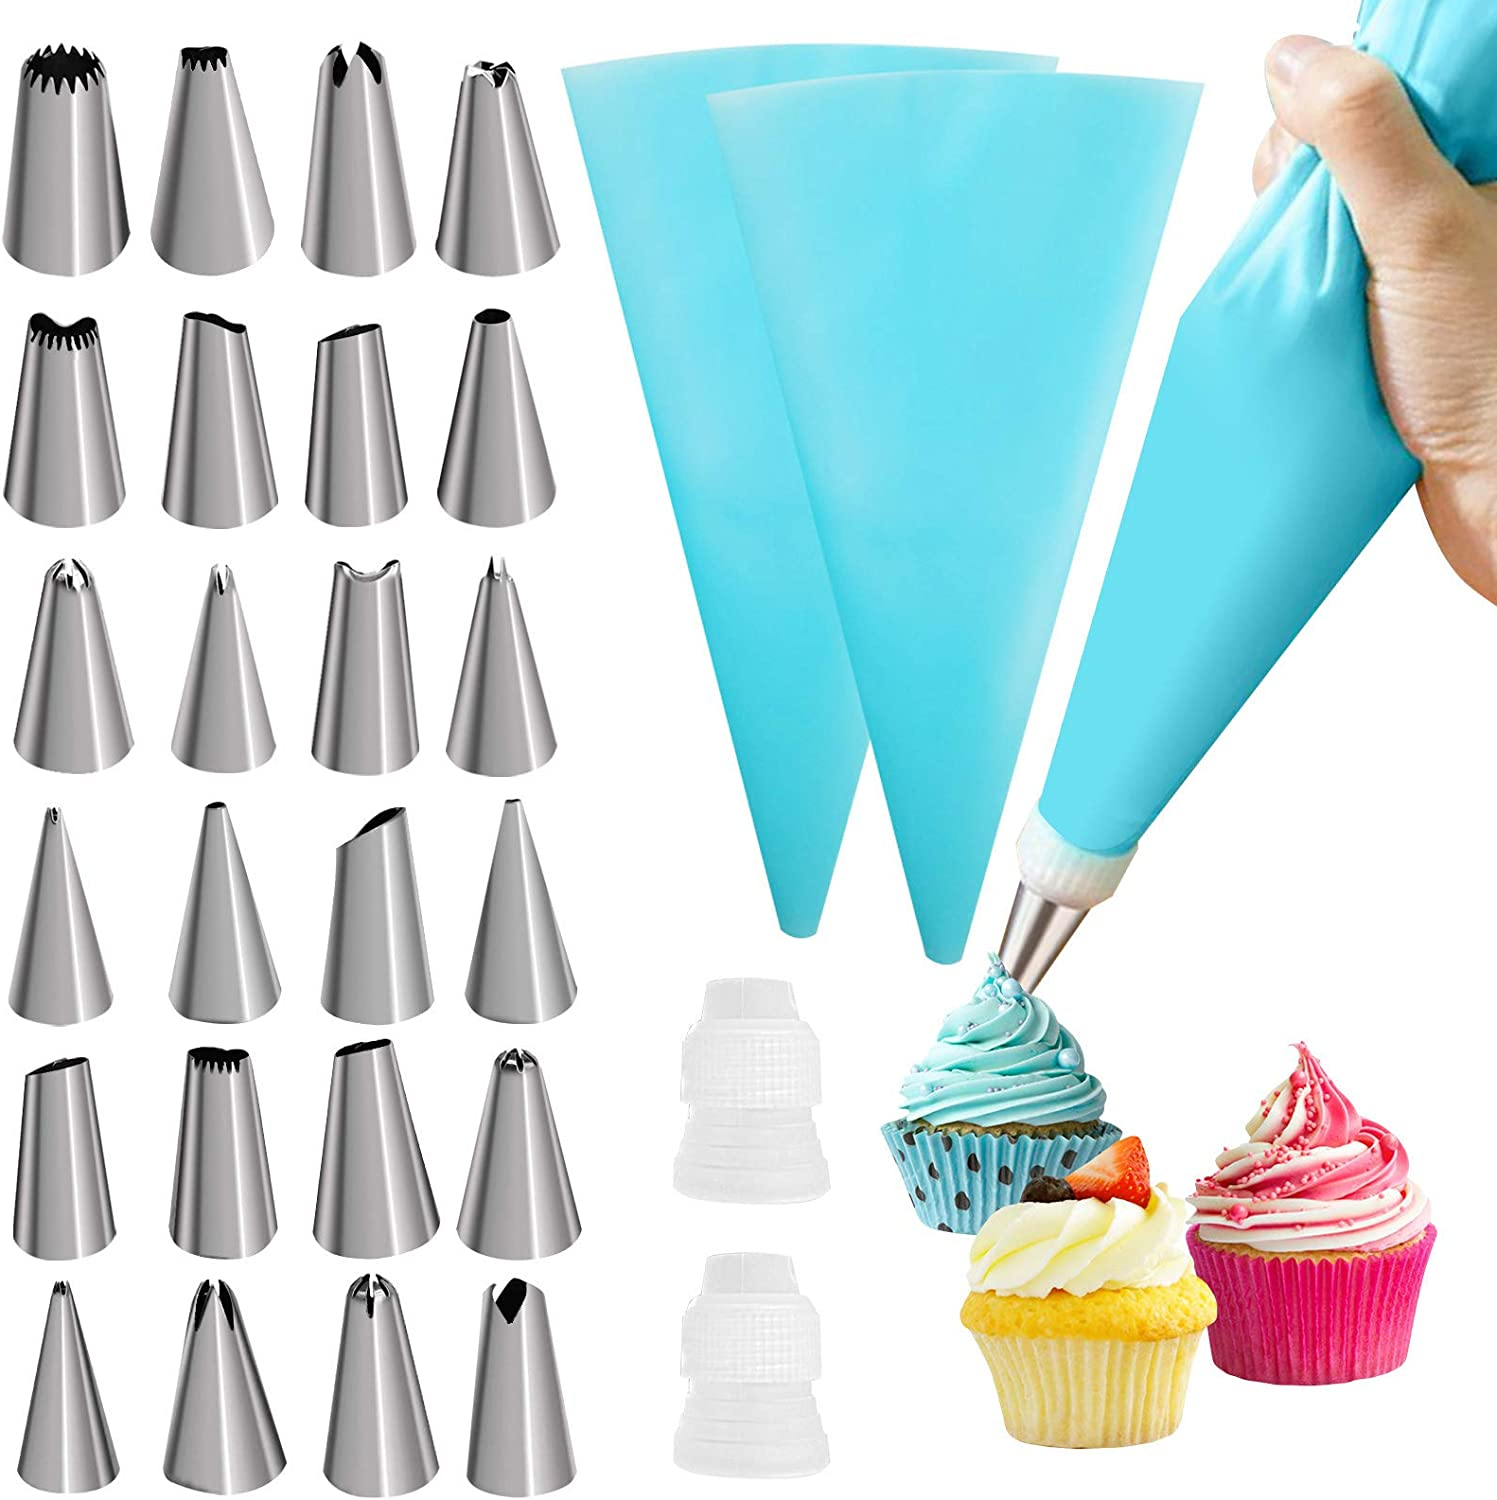 31Pcs Piping Bags and Tips Set Latest item 2 With Japan Maker New Reusable St Pastry 24